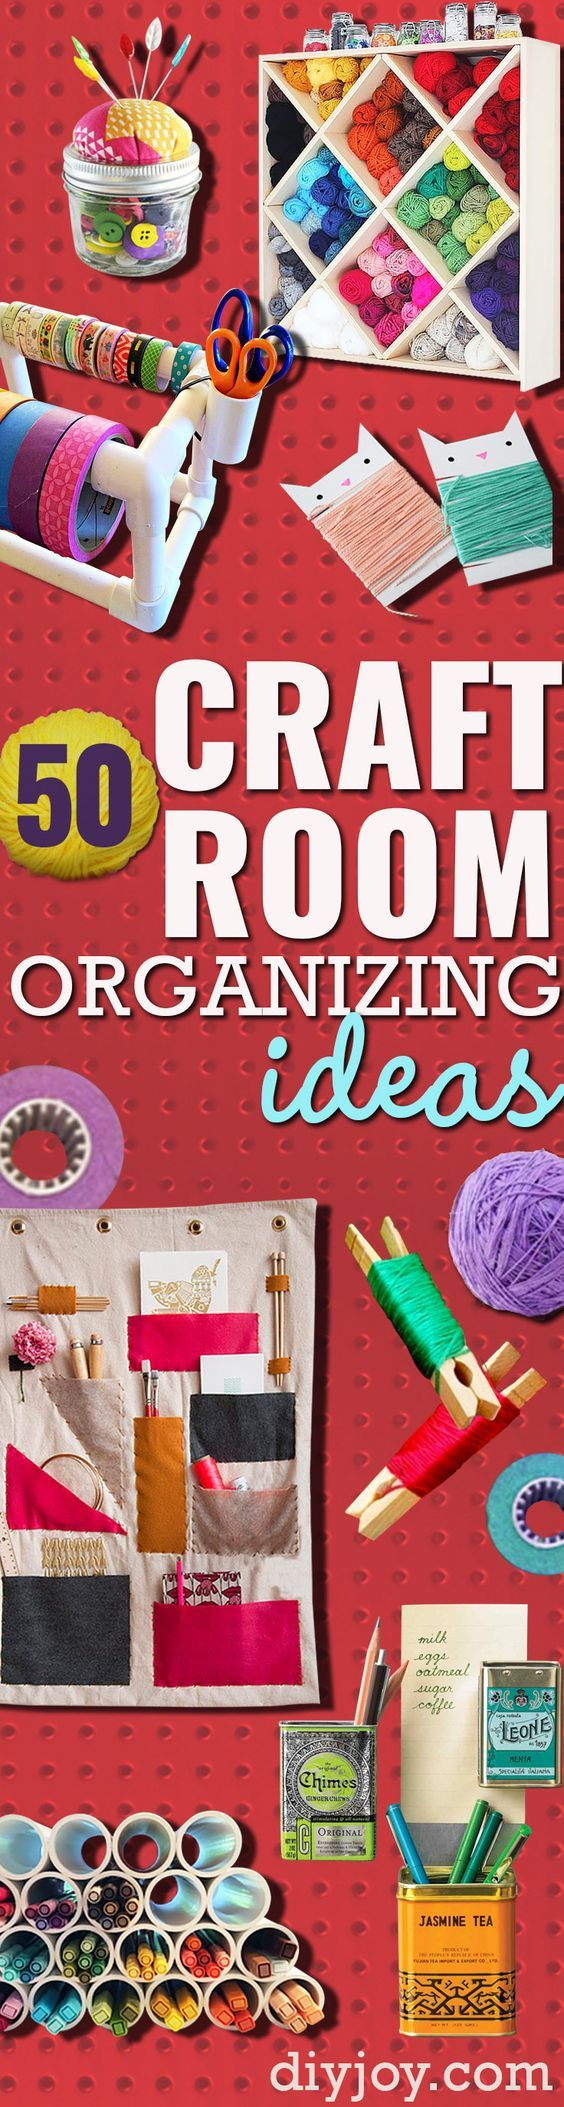 Scrapbook ideas about yourself - 50 Clever Craft Room Organization Ideas